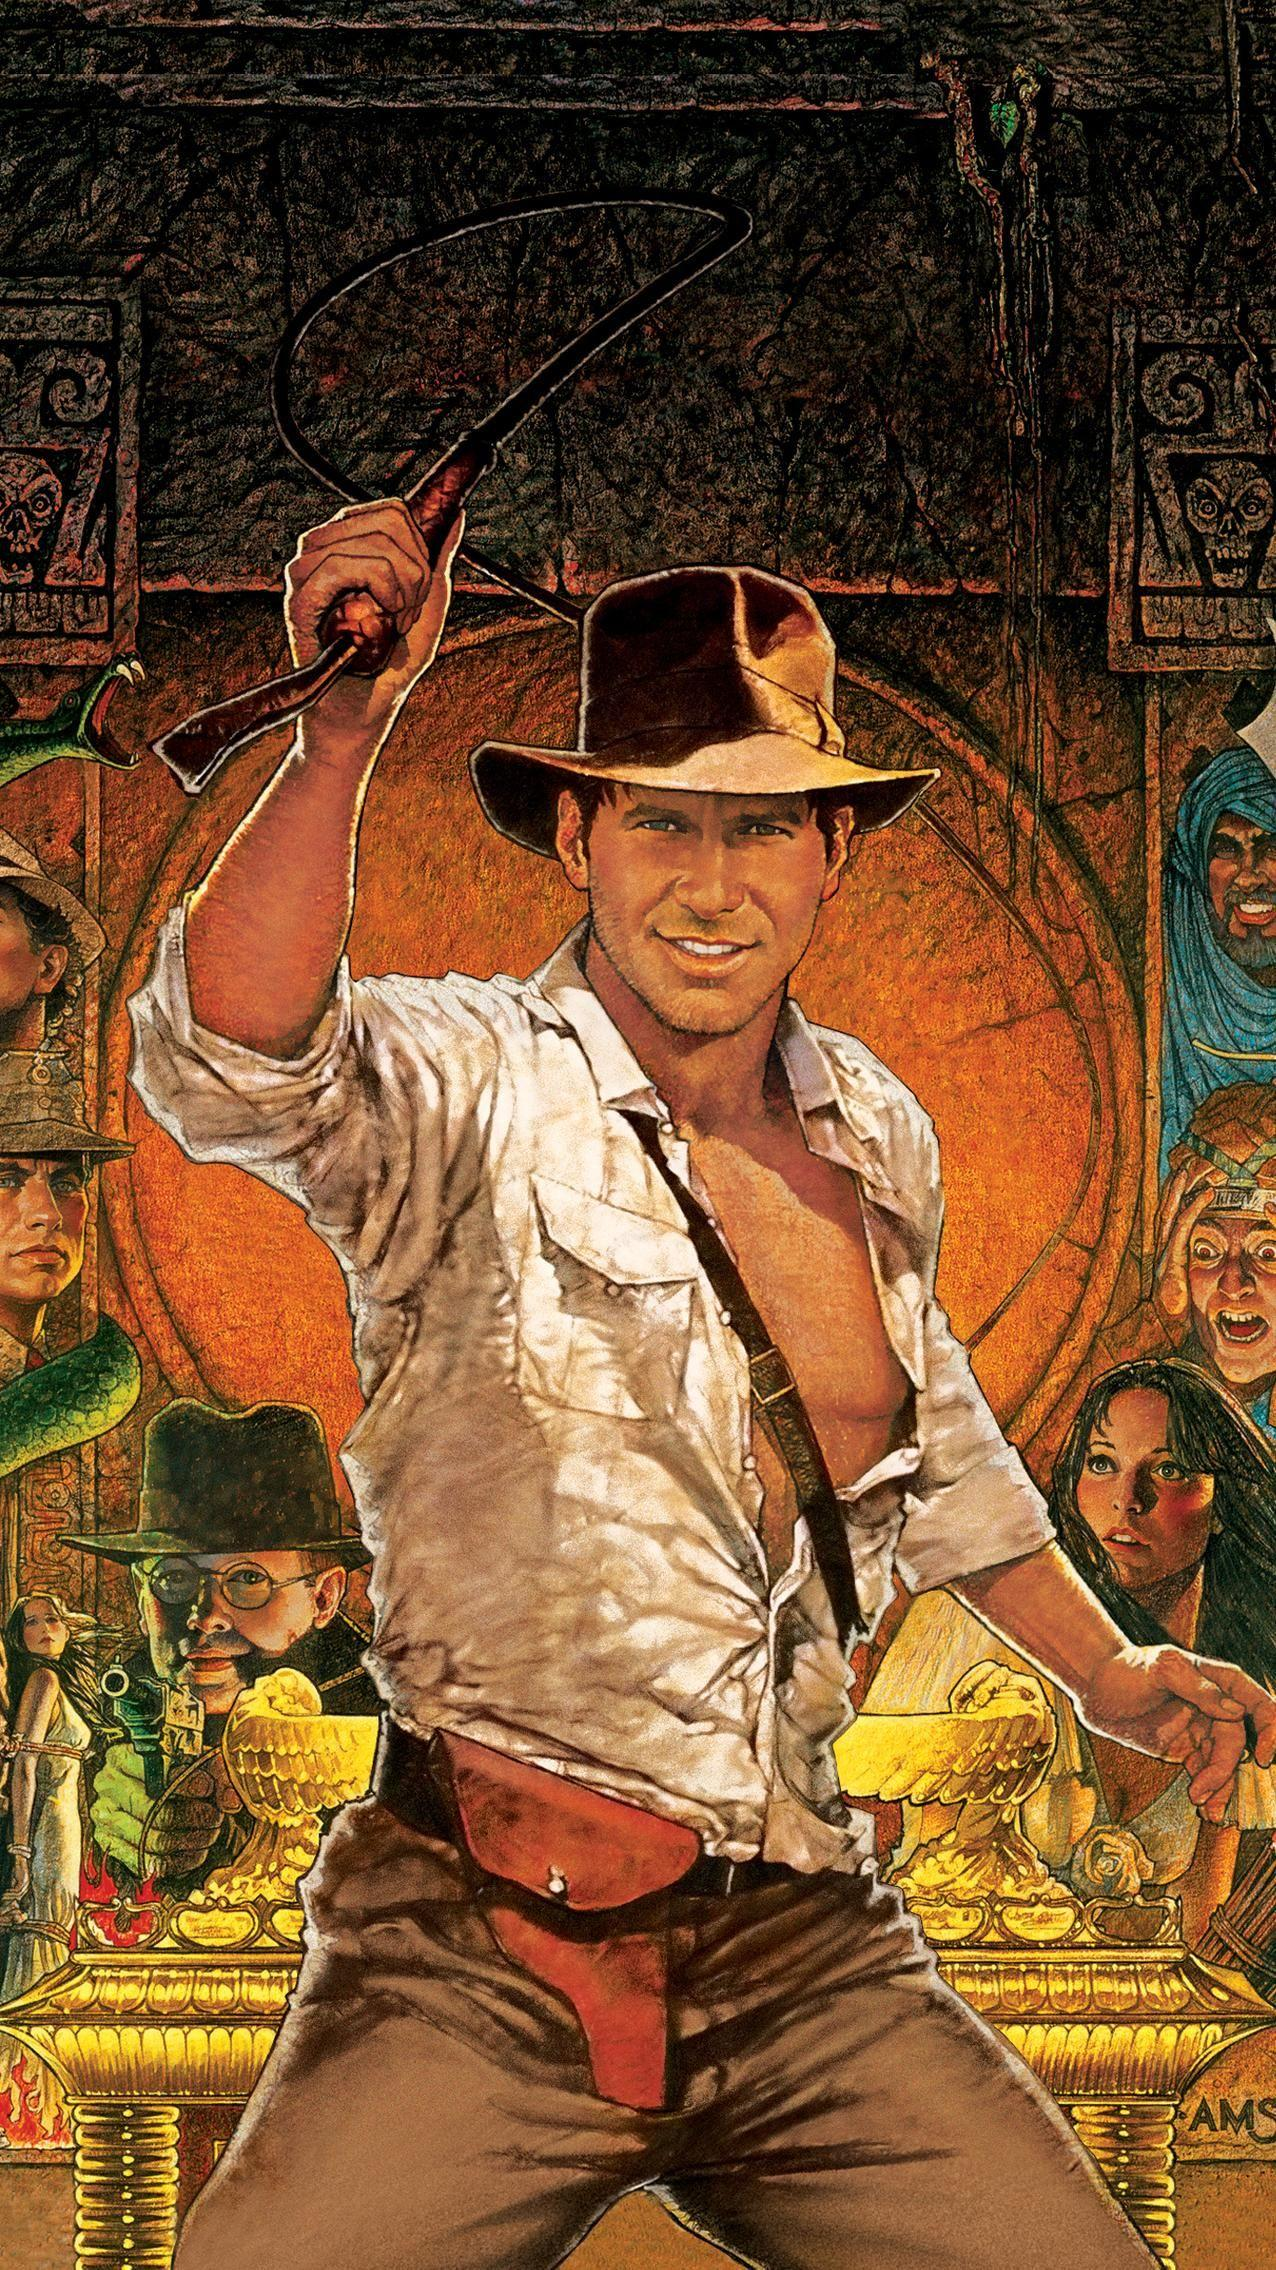 Raiders of the Lost Ark (1981) Phone Wallpaper in 2019 | Indiana ...